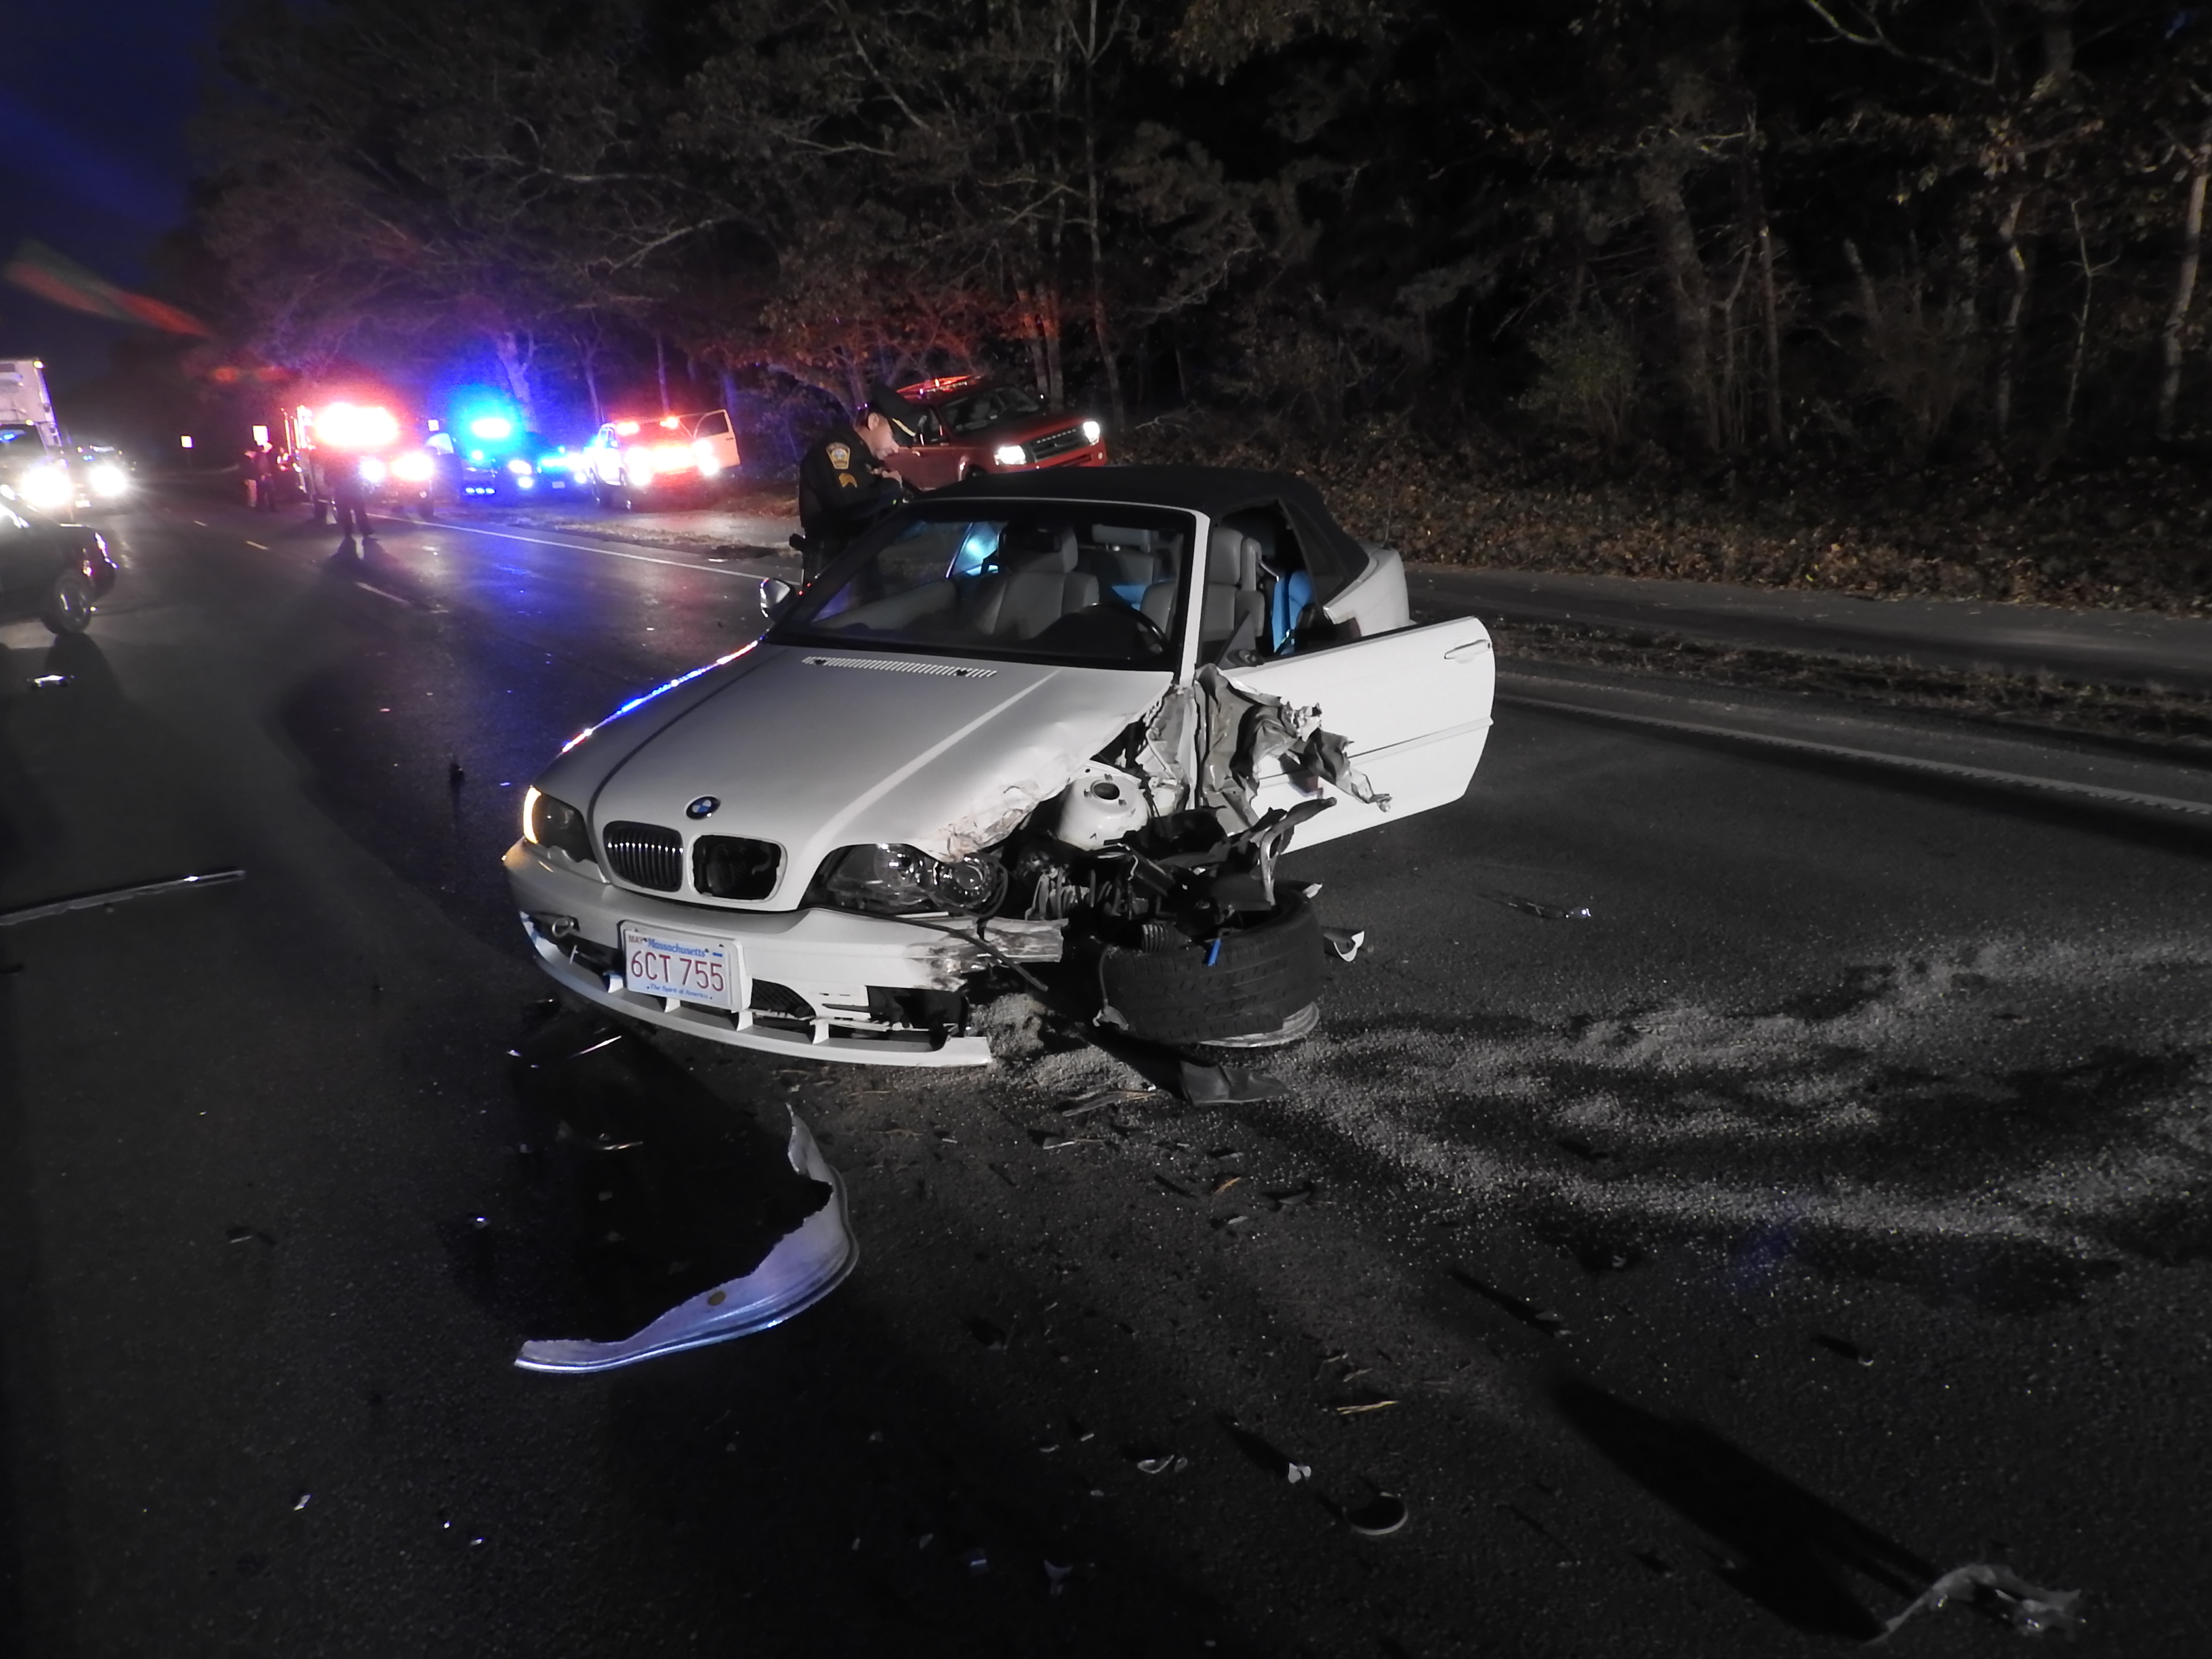 head-on collision leaves one person injured - the martha's vineyard